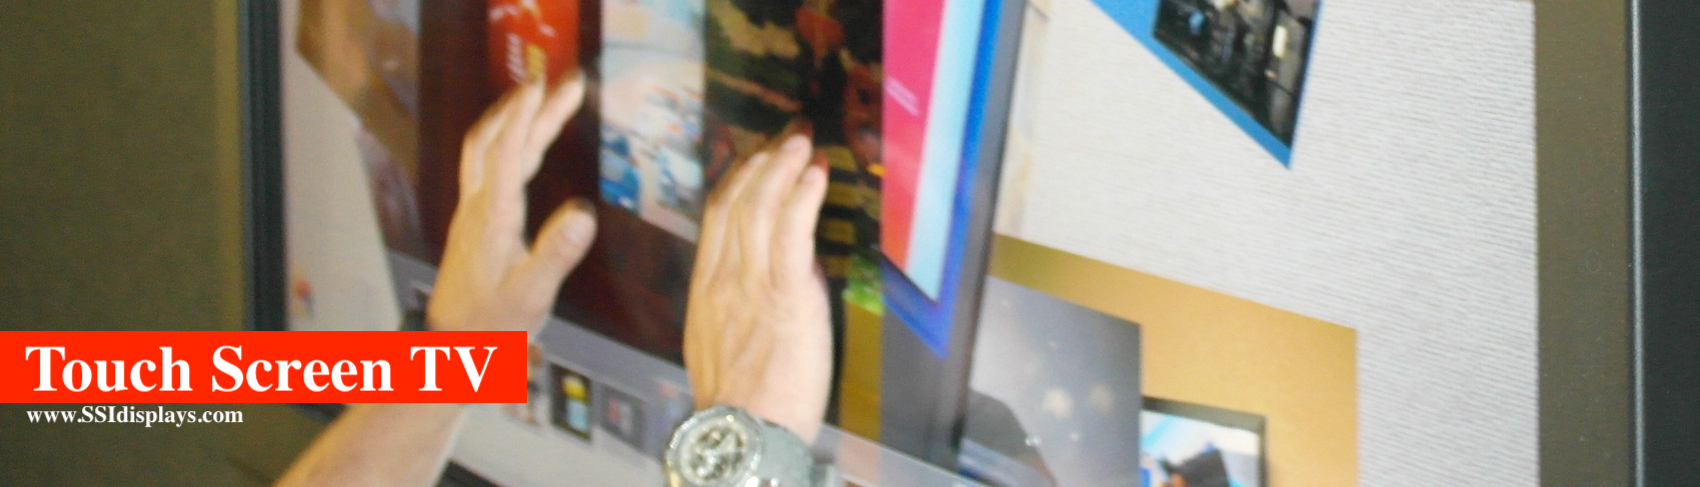 Large Format Multitouch Screen TV Display